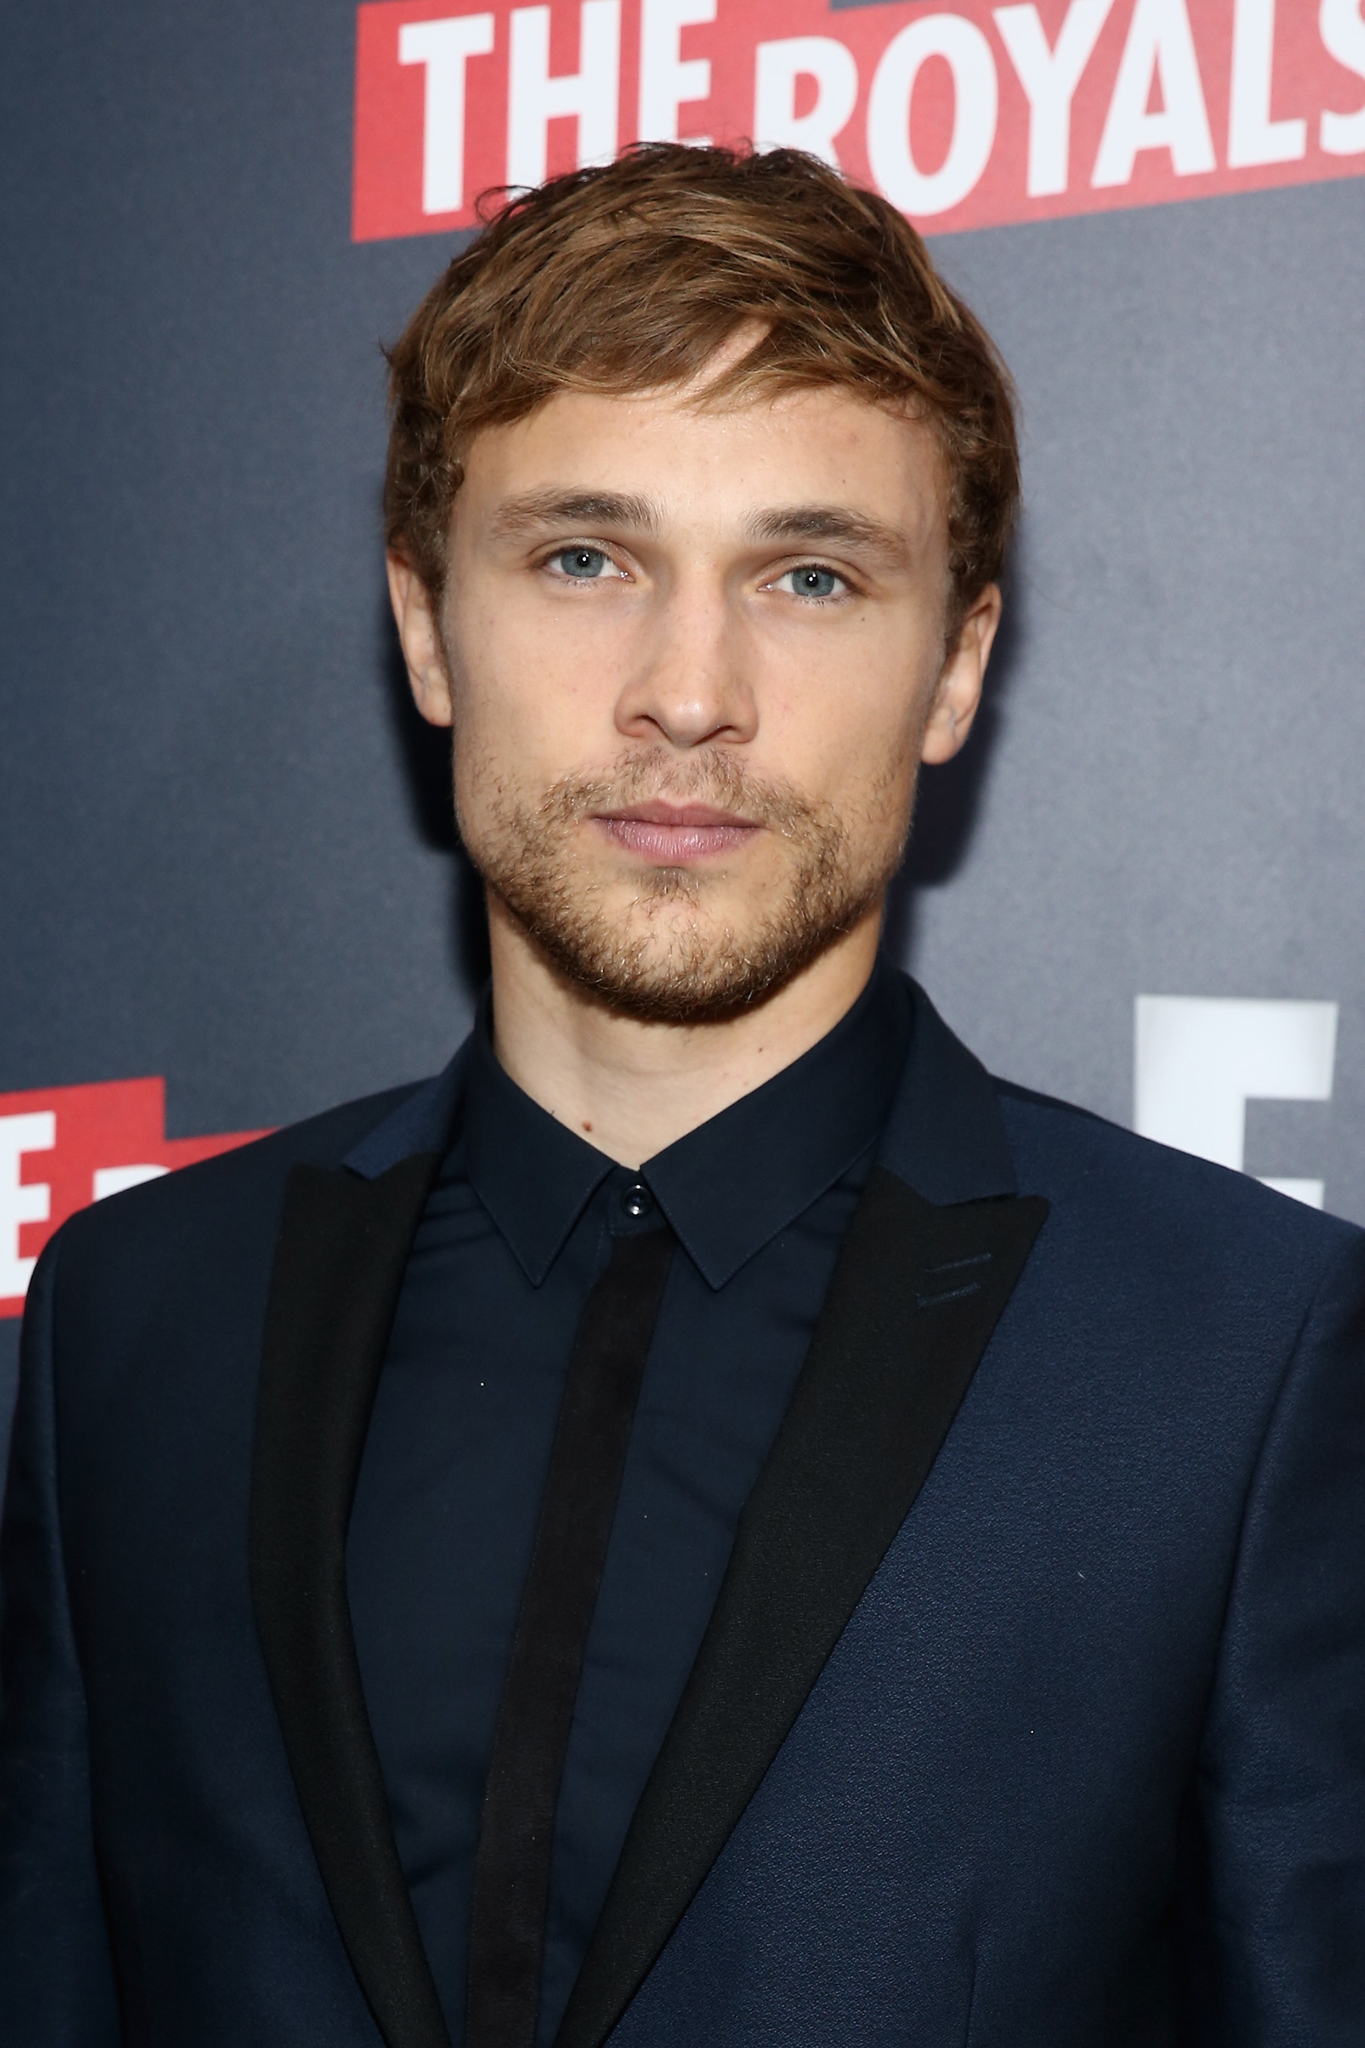 images William Moseley (born 1987)